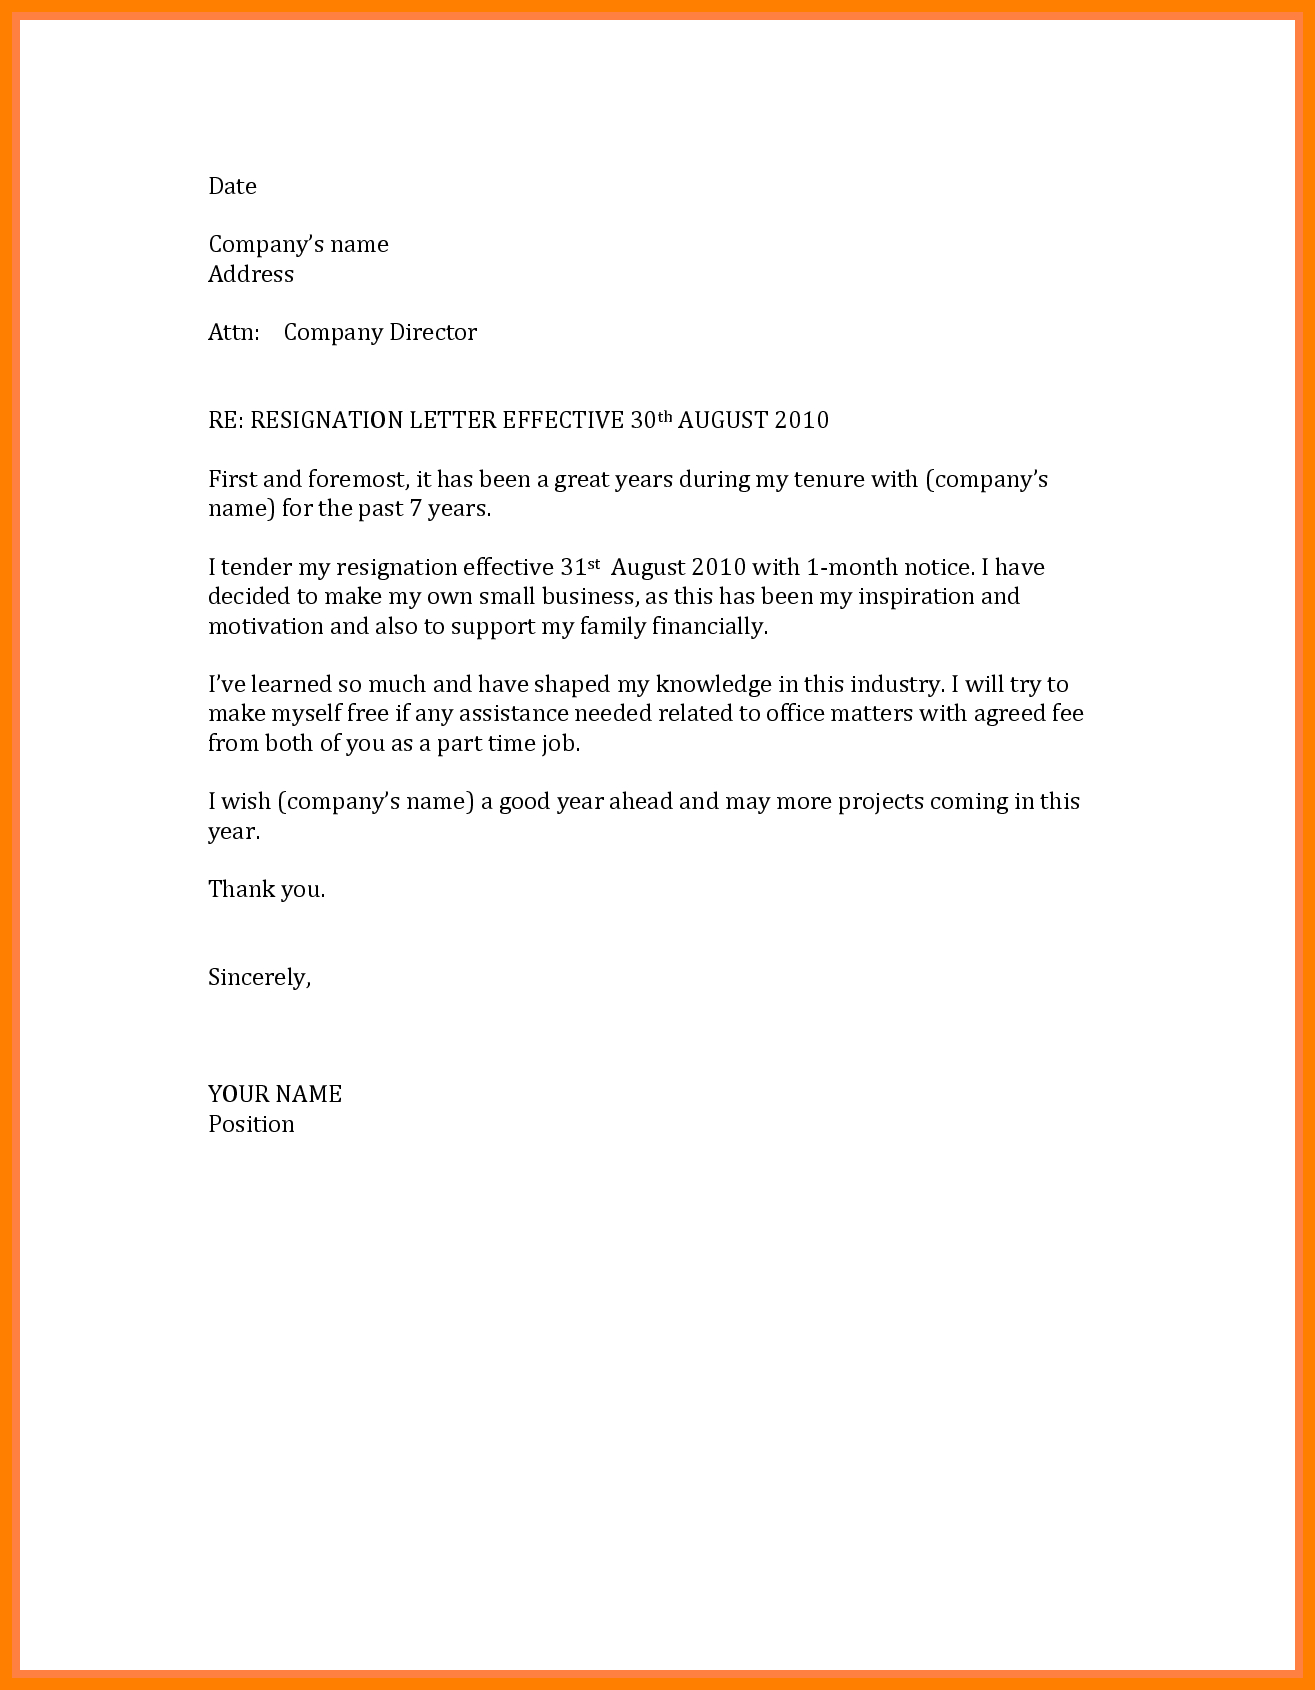 Free Printable Resignation Letter Template - Sample Job Resignation Letter with Noticeod without Simple Month